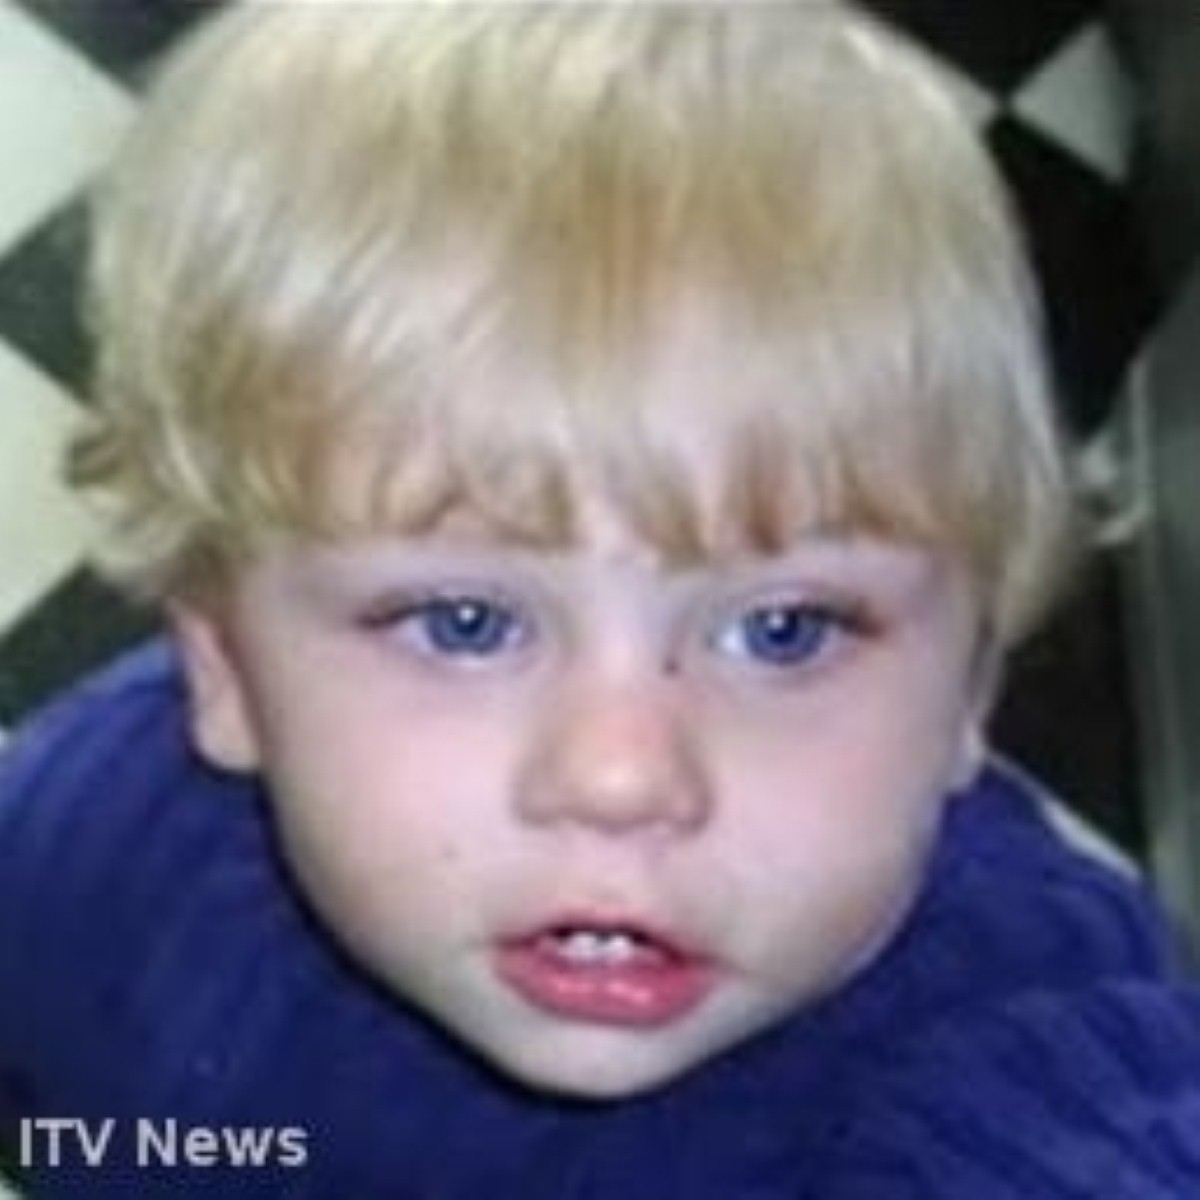 17-month-old Peter Connelly's tragic death continues to overshadow care workers